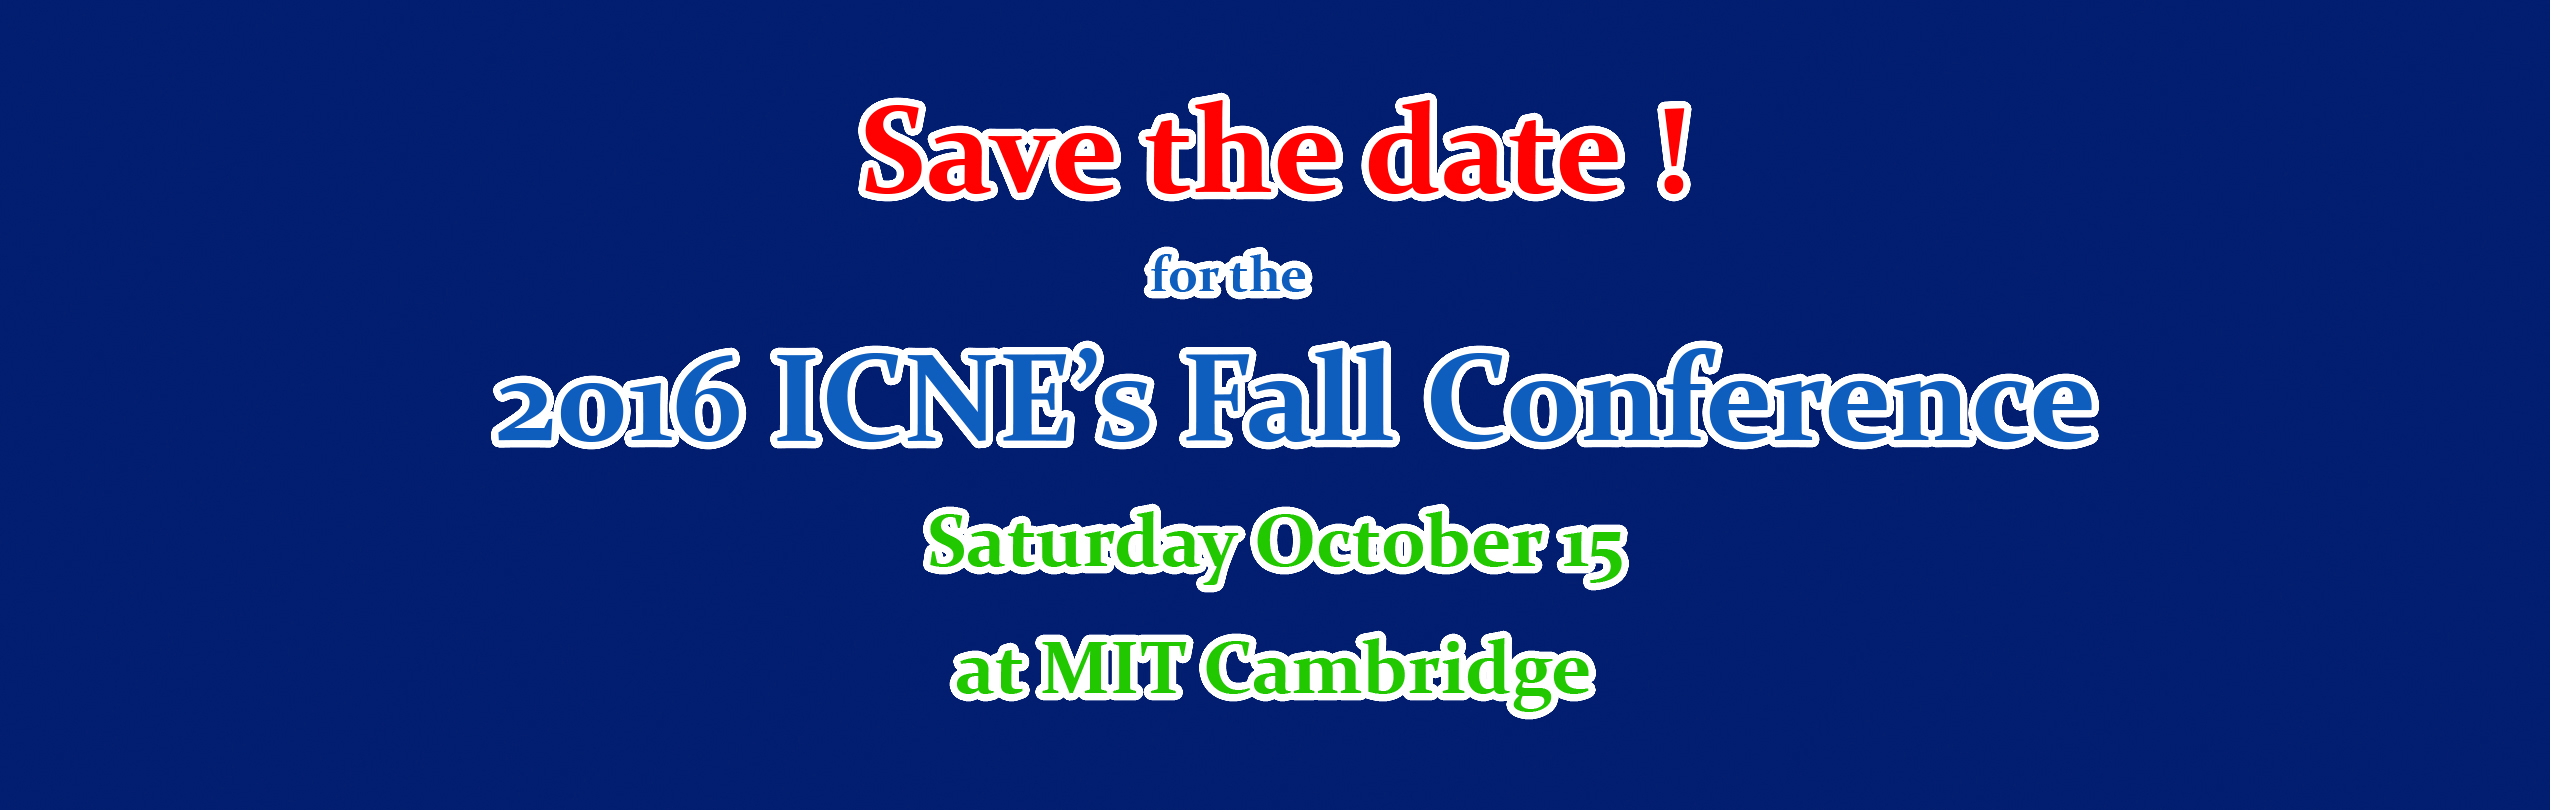 2016 ICNE Conference at MIT